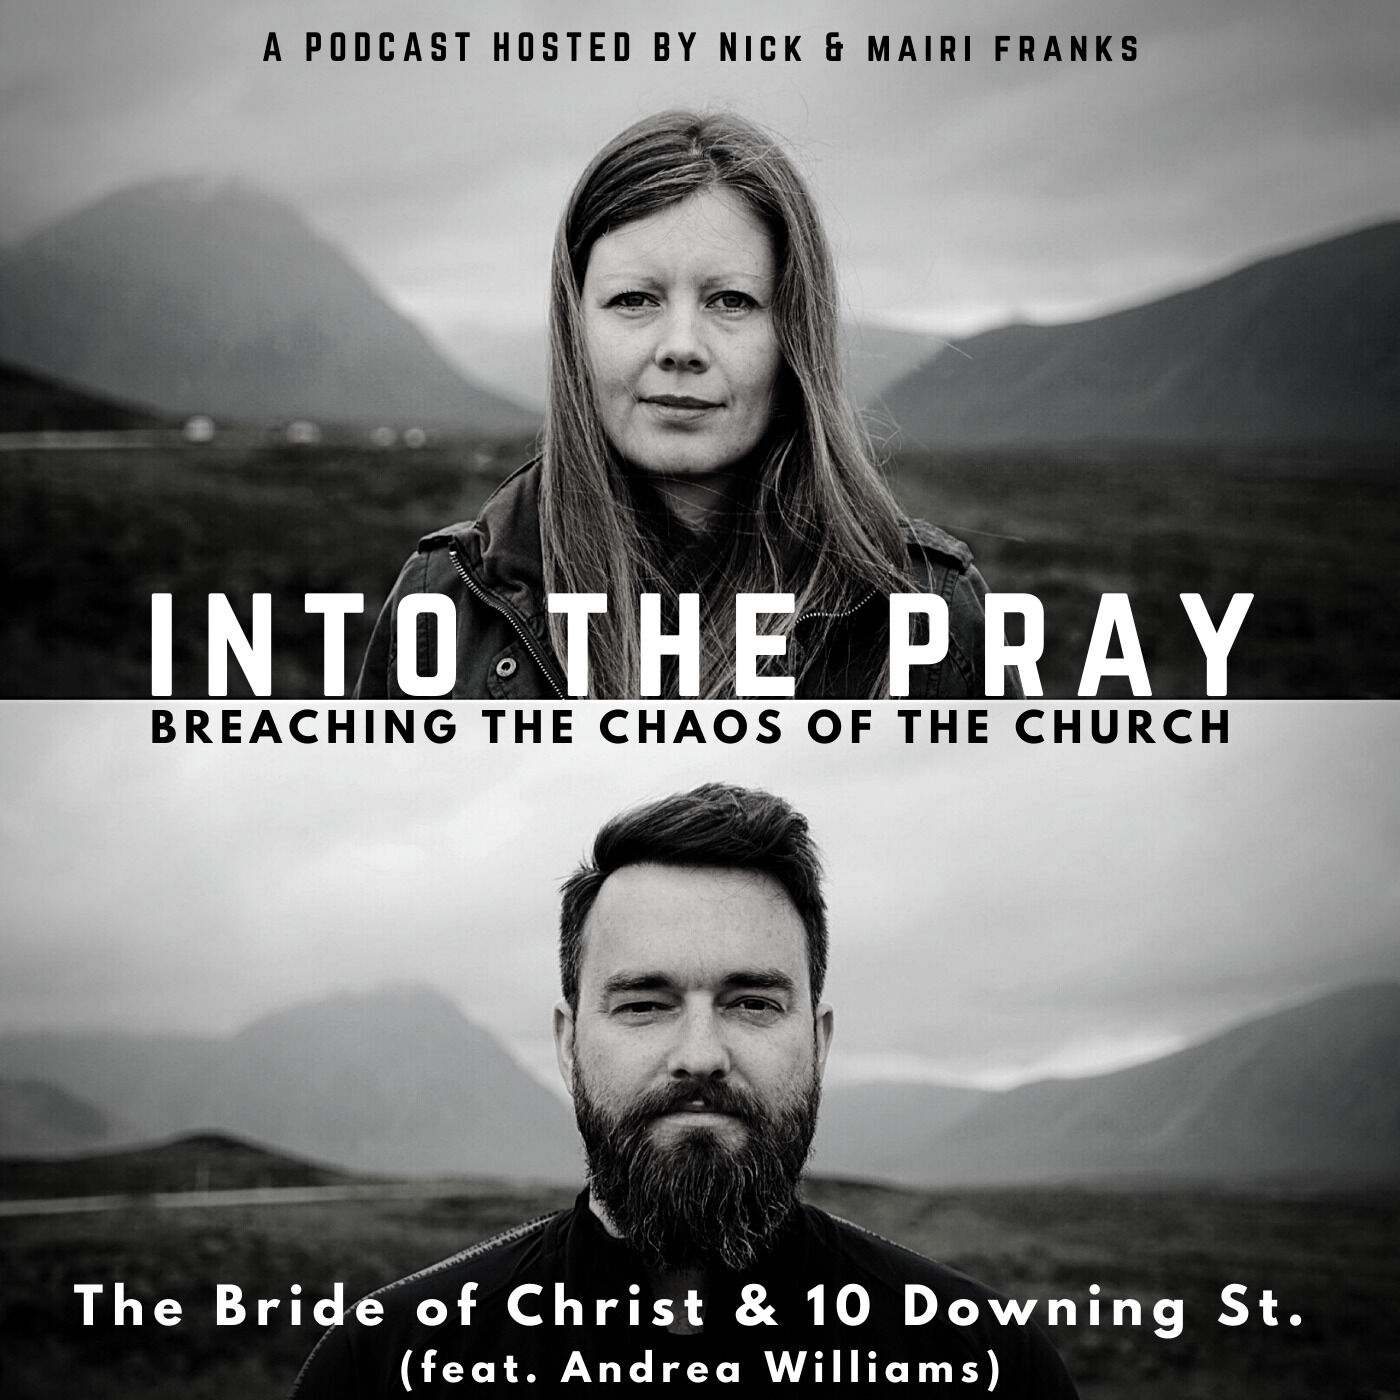 The Bride of Christ & 10 Downing Street (feat. Andrea Williams)